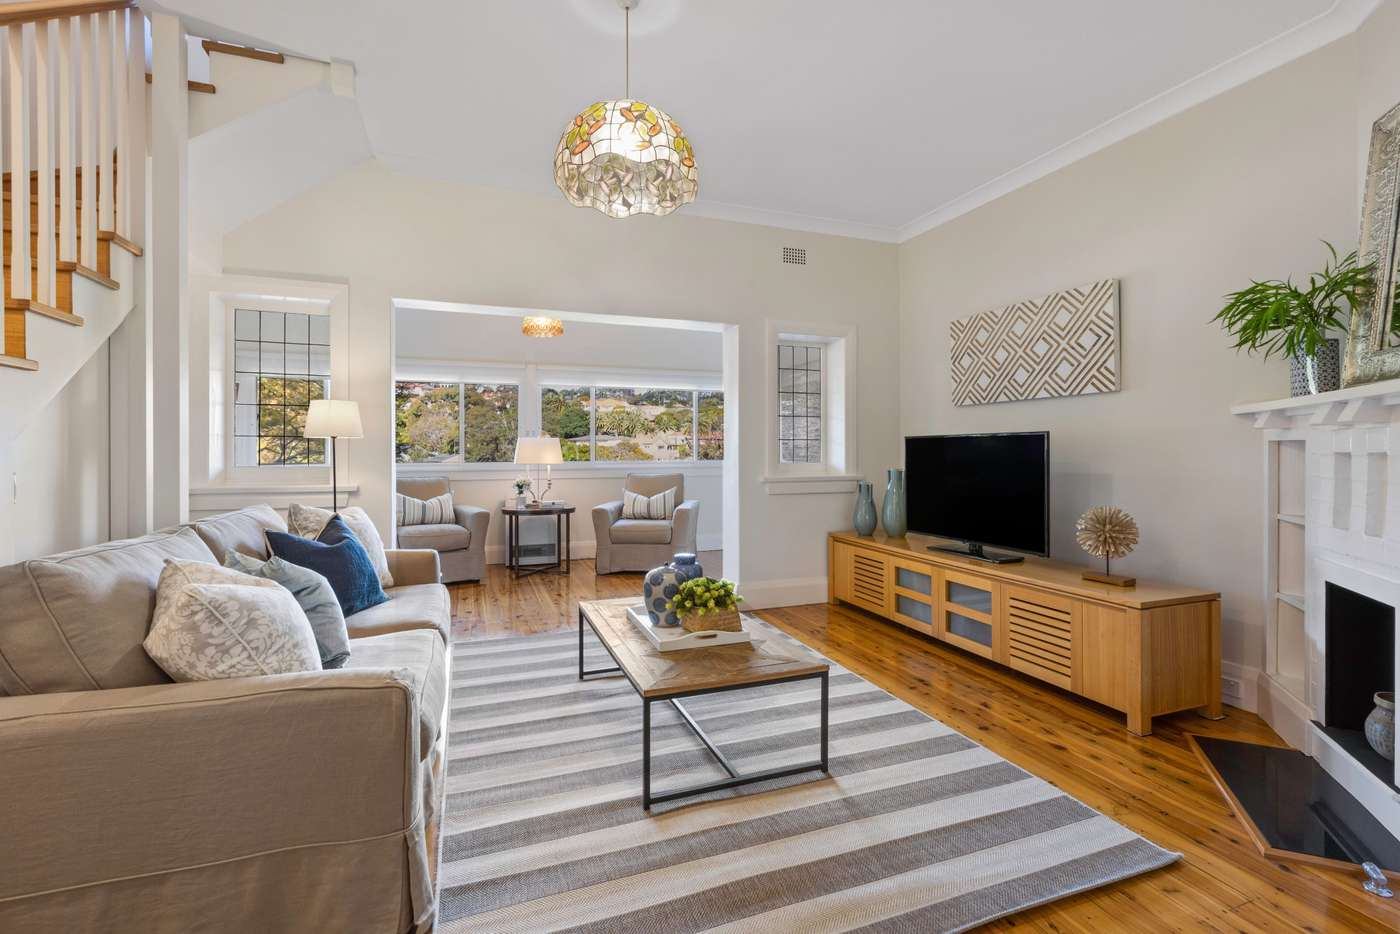 Main view of Homely house listing, 29 Clanalpine Street, Mosman NSW 2088